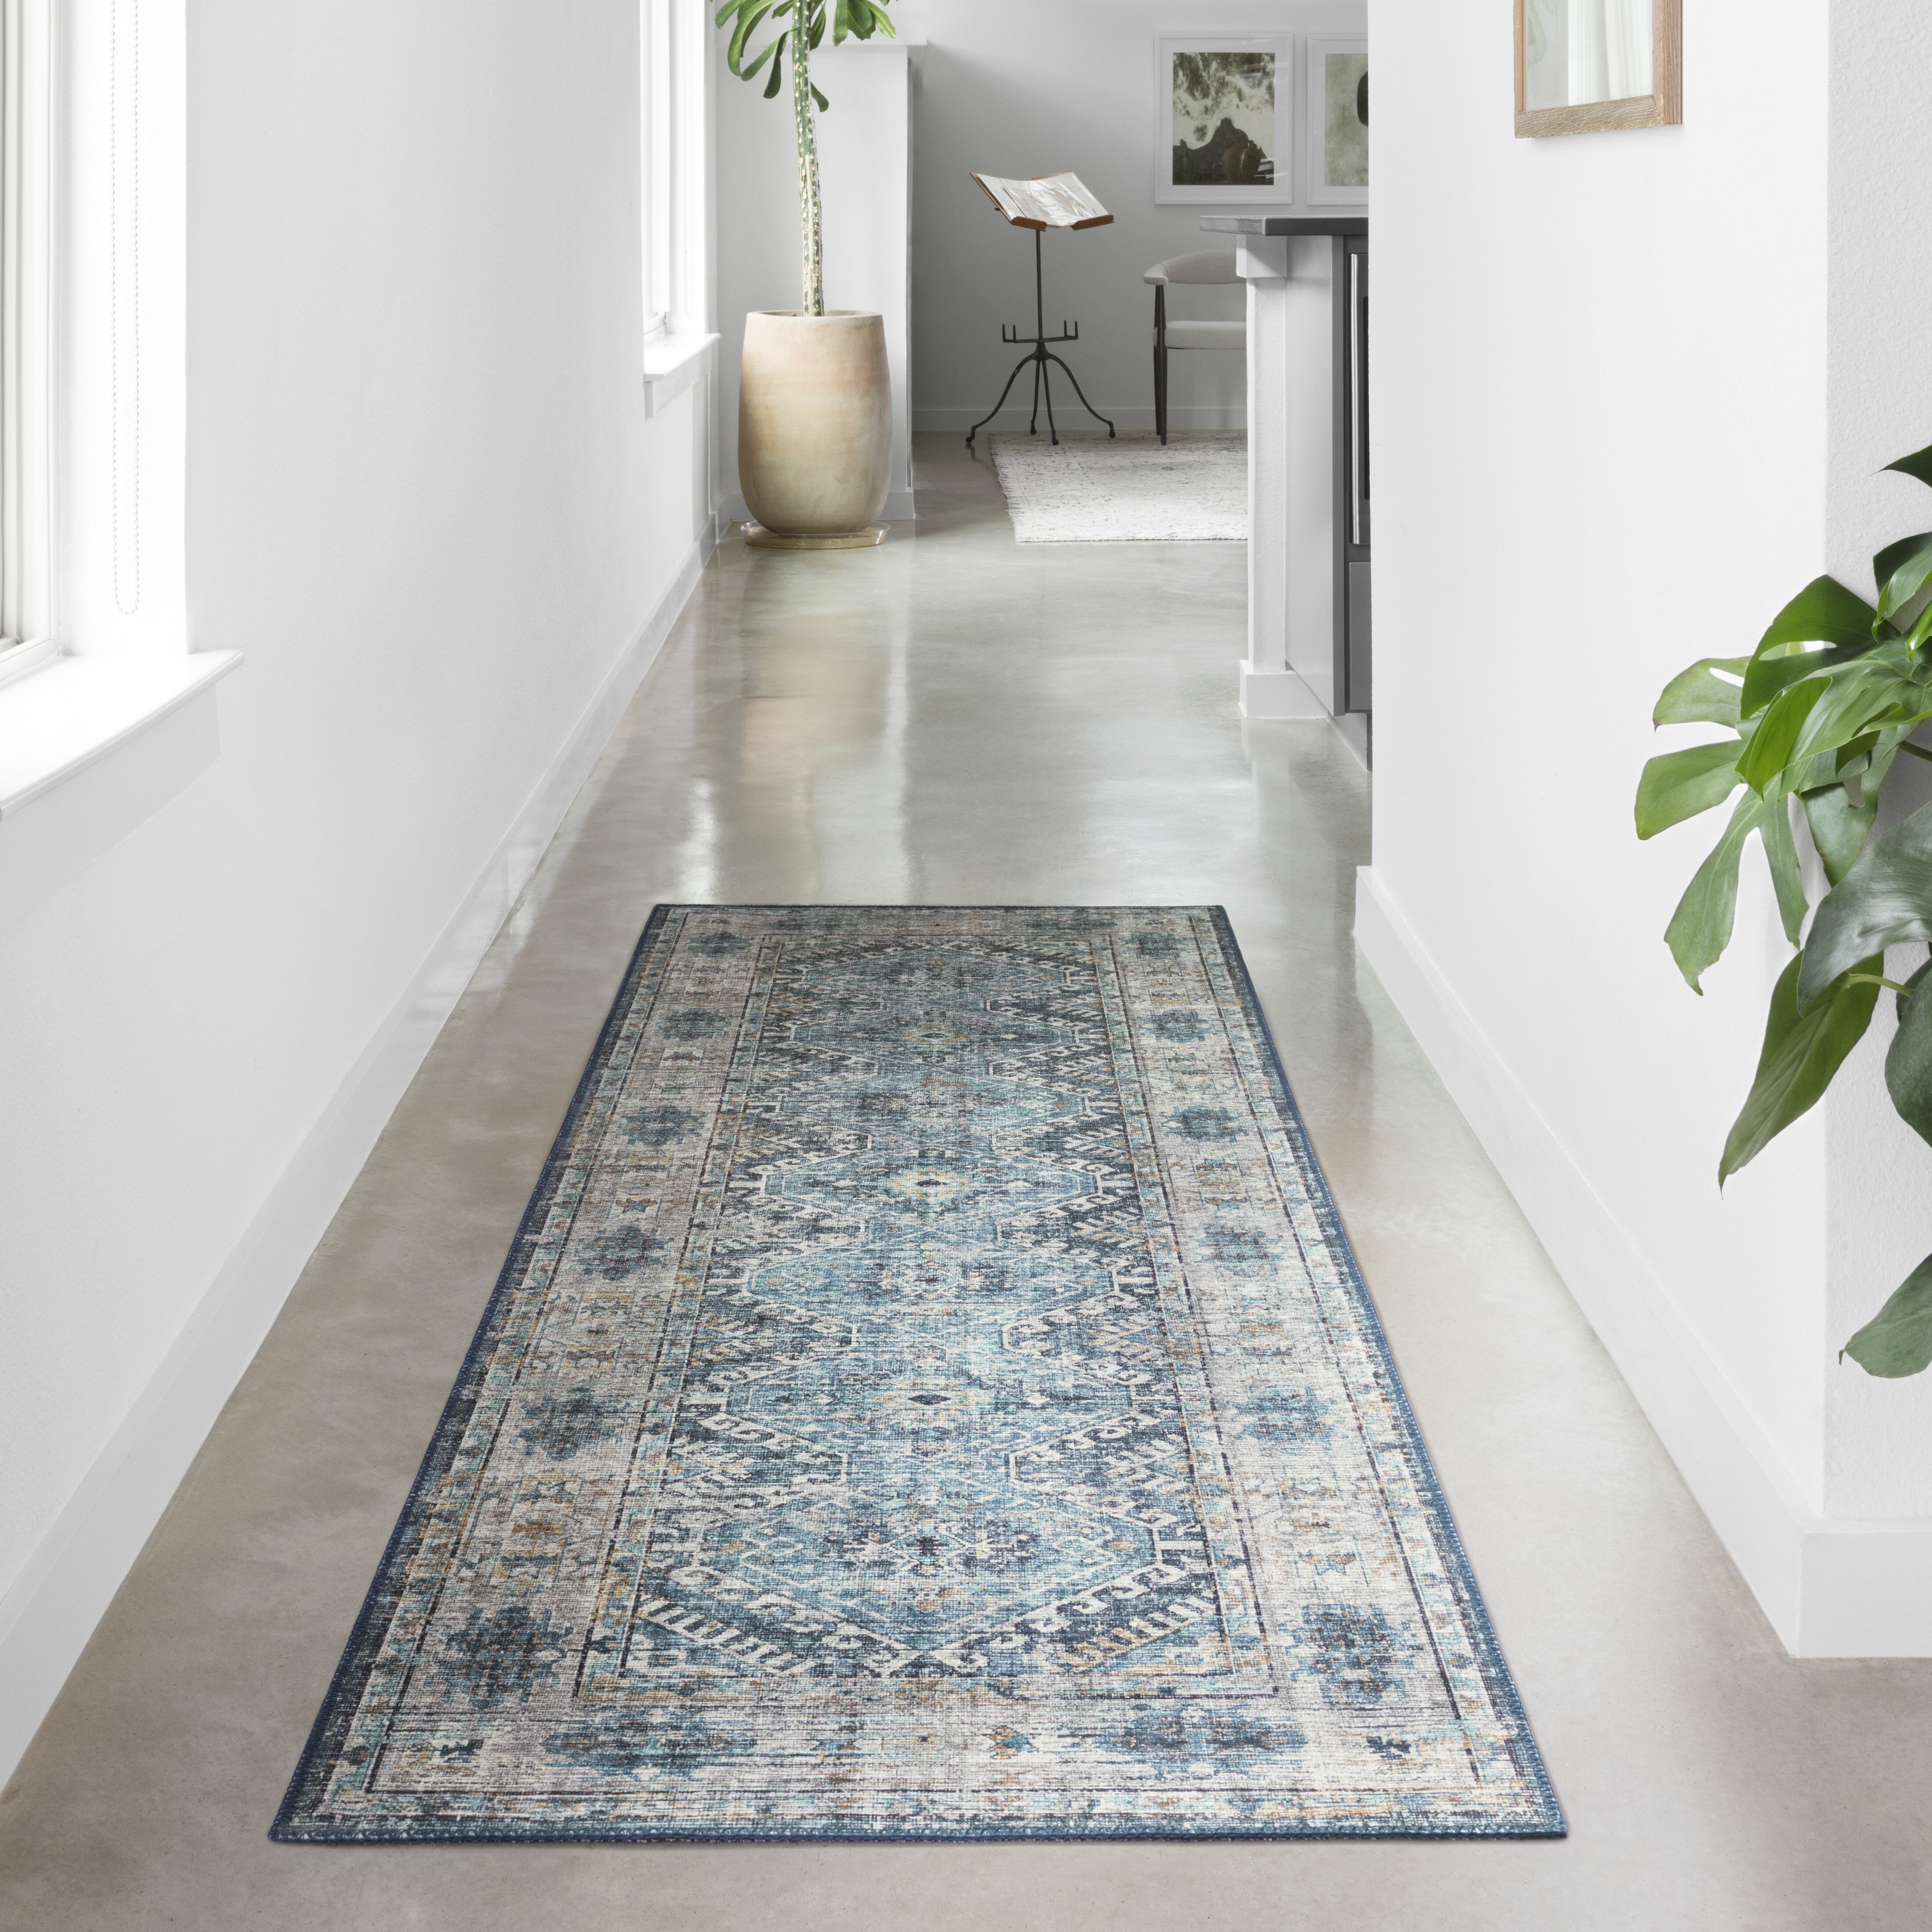 Teal Rugs for Living Rooms Low Pile Rug for Hallway Best Boho Vintage Rugs NEW